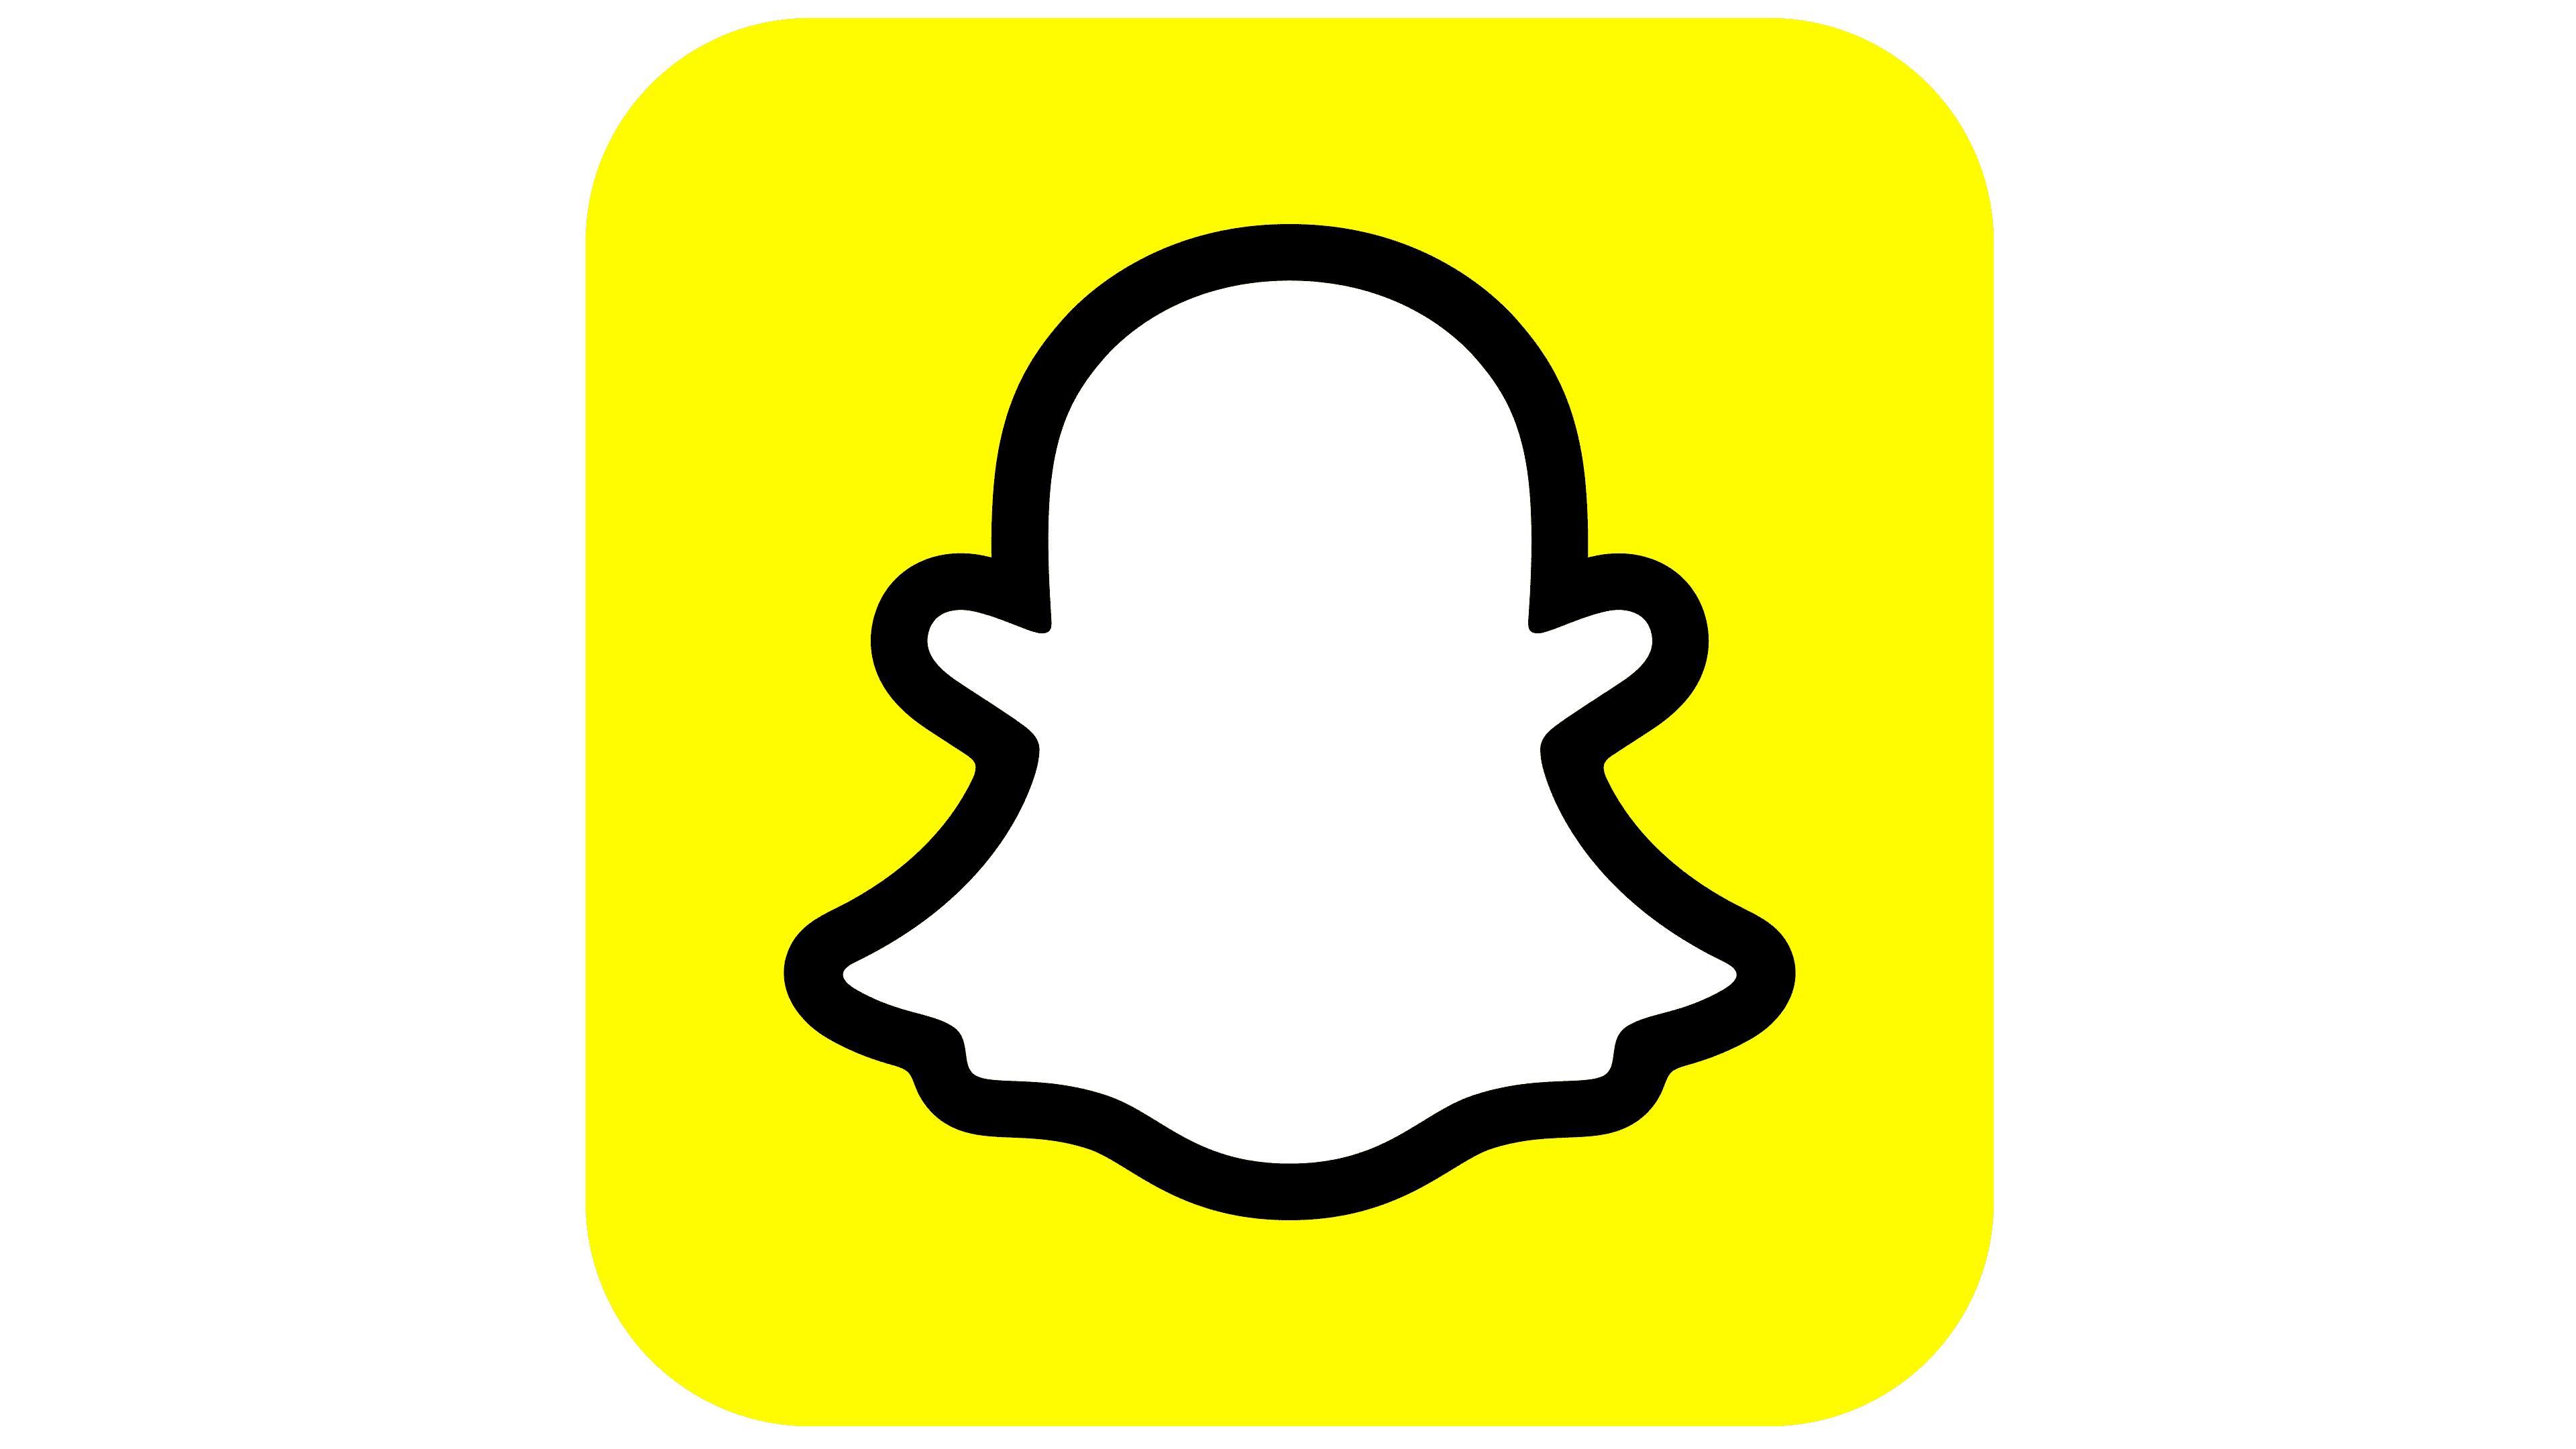 Snapchat Logo The Most Famous Brands And Company Logos In The World